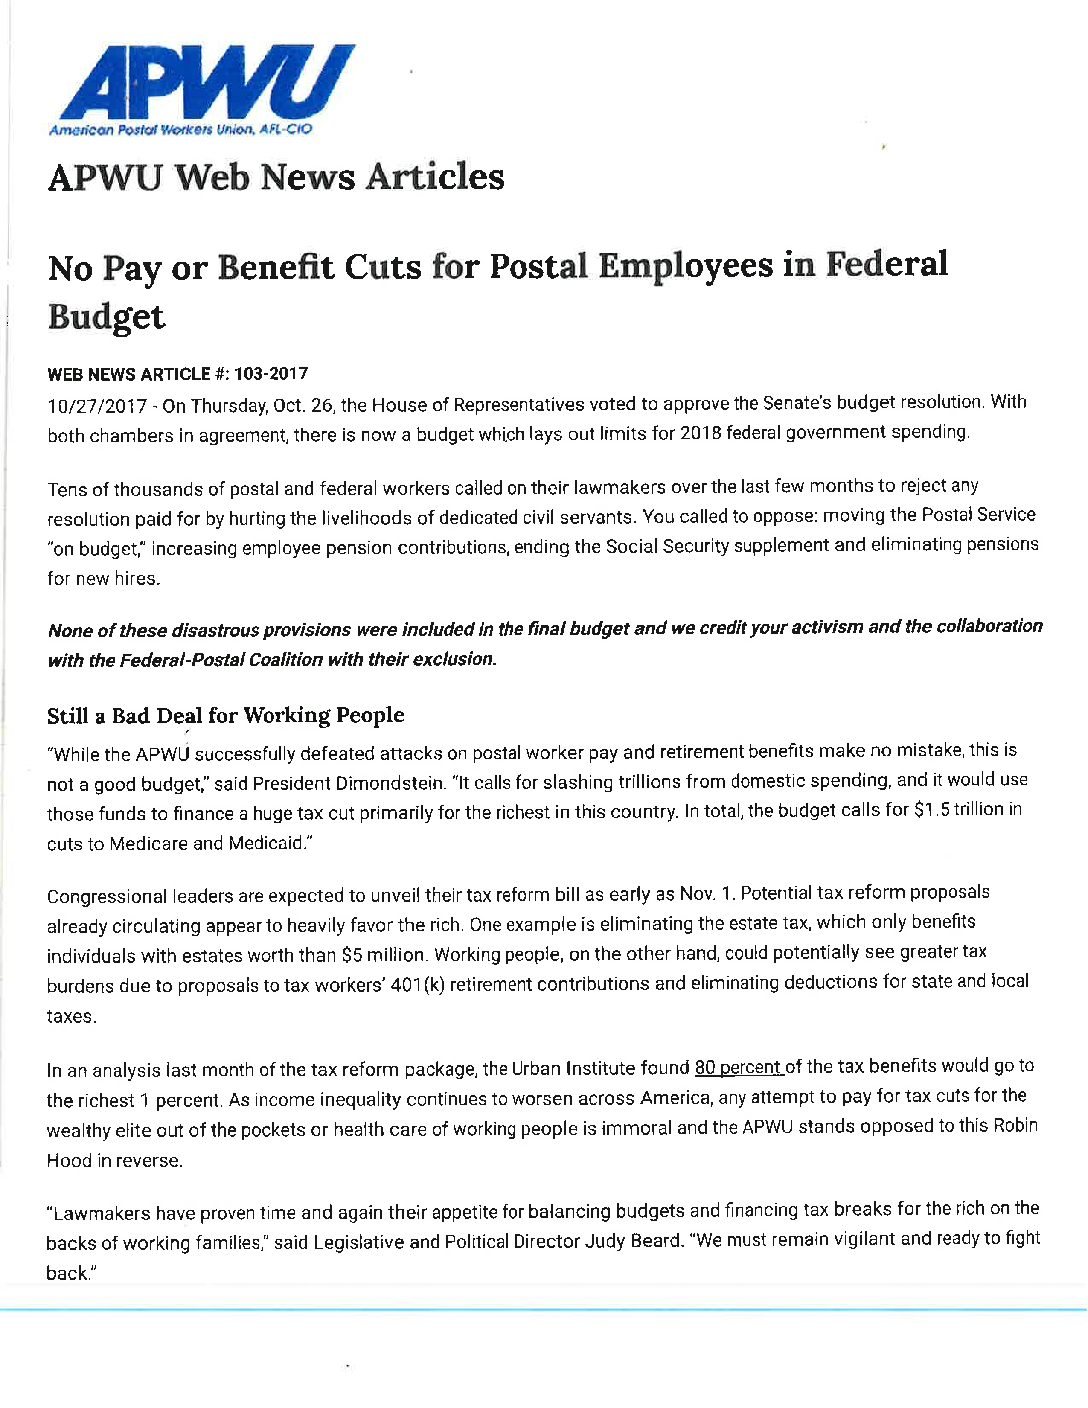 No Pay or Benefit Cuts For Postal Employees in Federal Budget